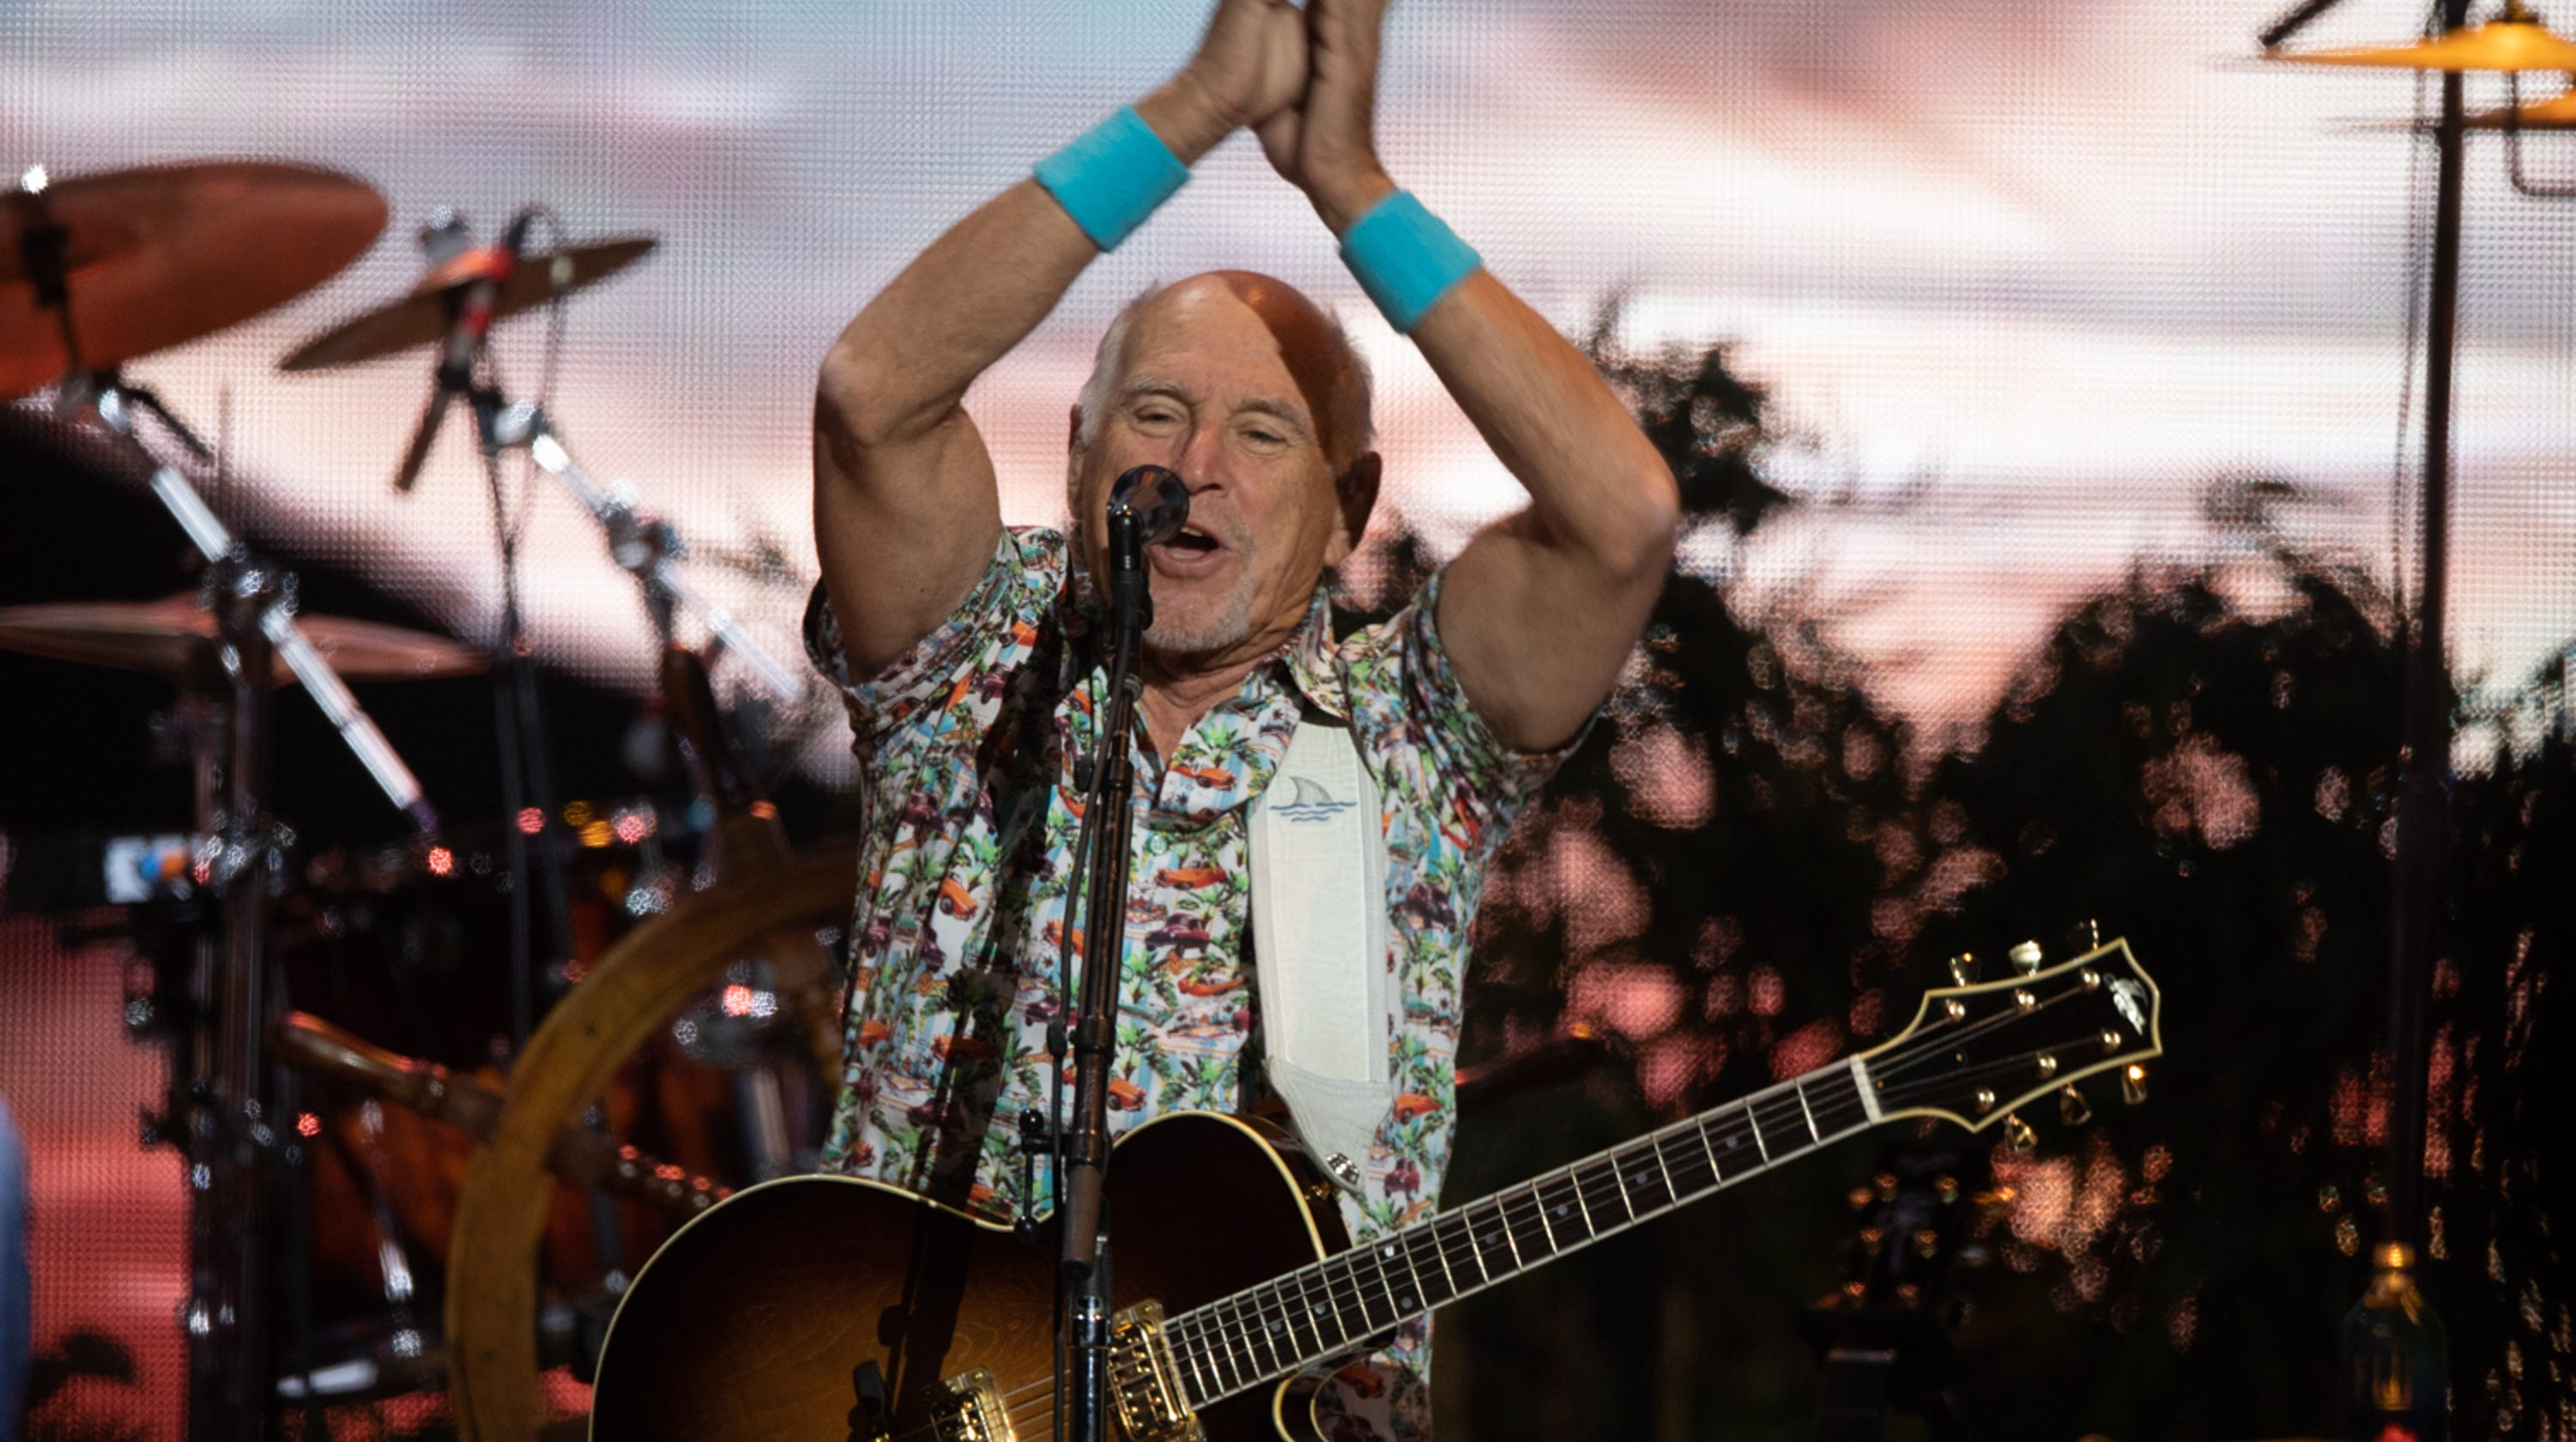 Jimmy Buffett and the Coral Reefer Band brought the party to Phoenix